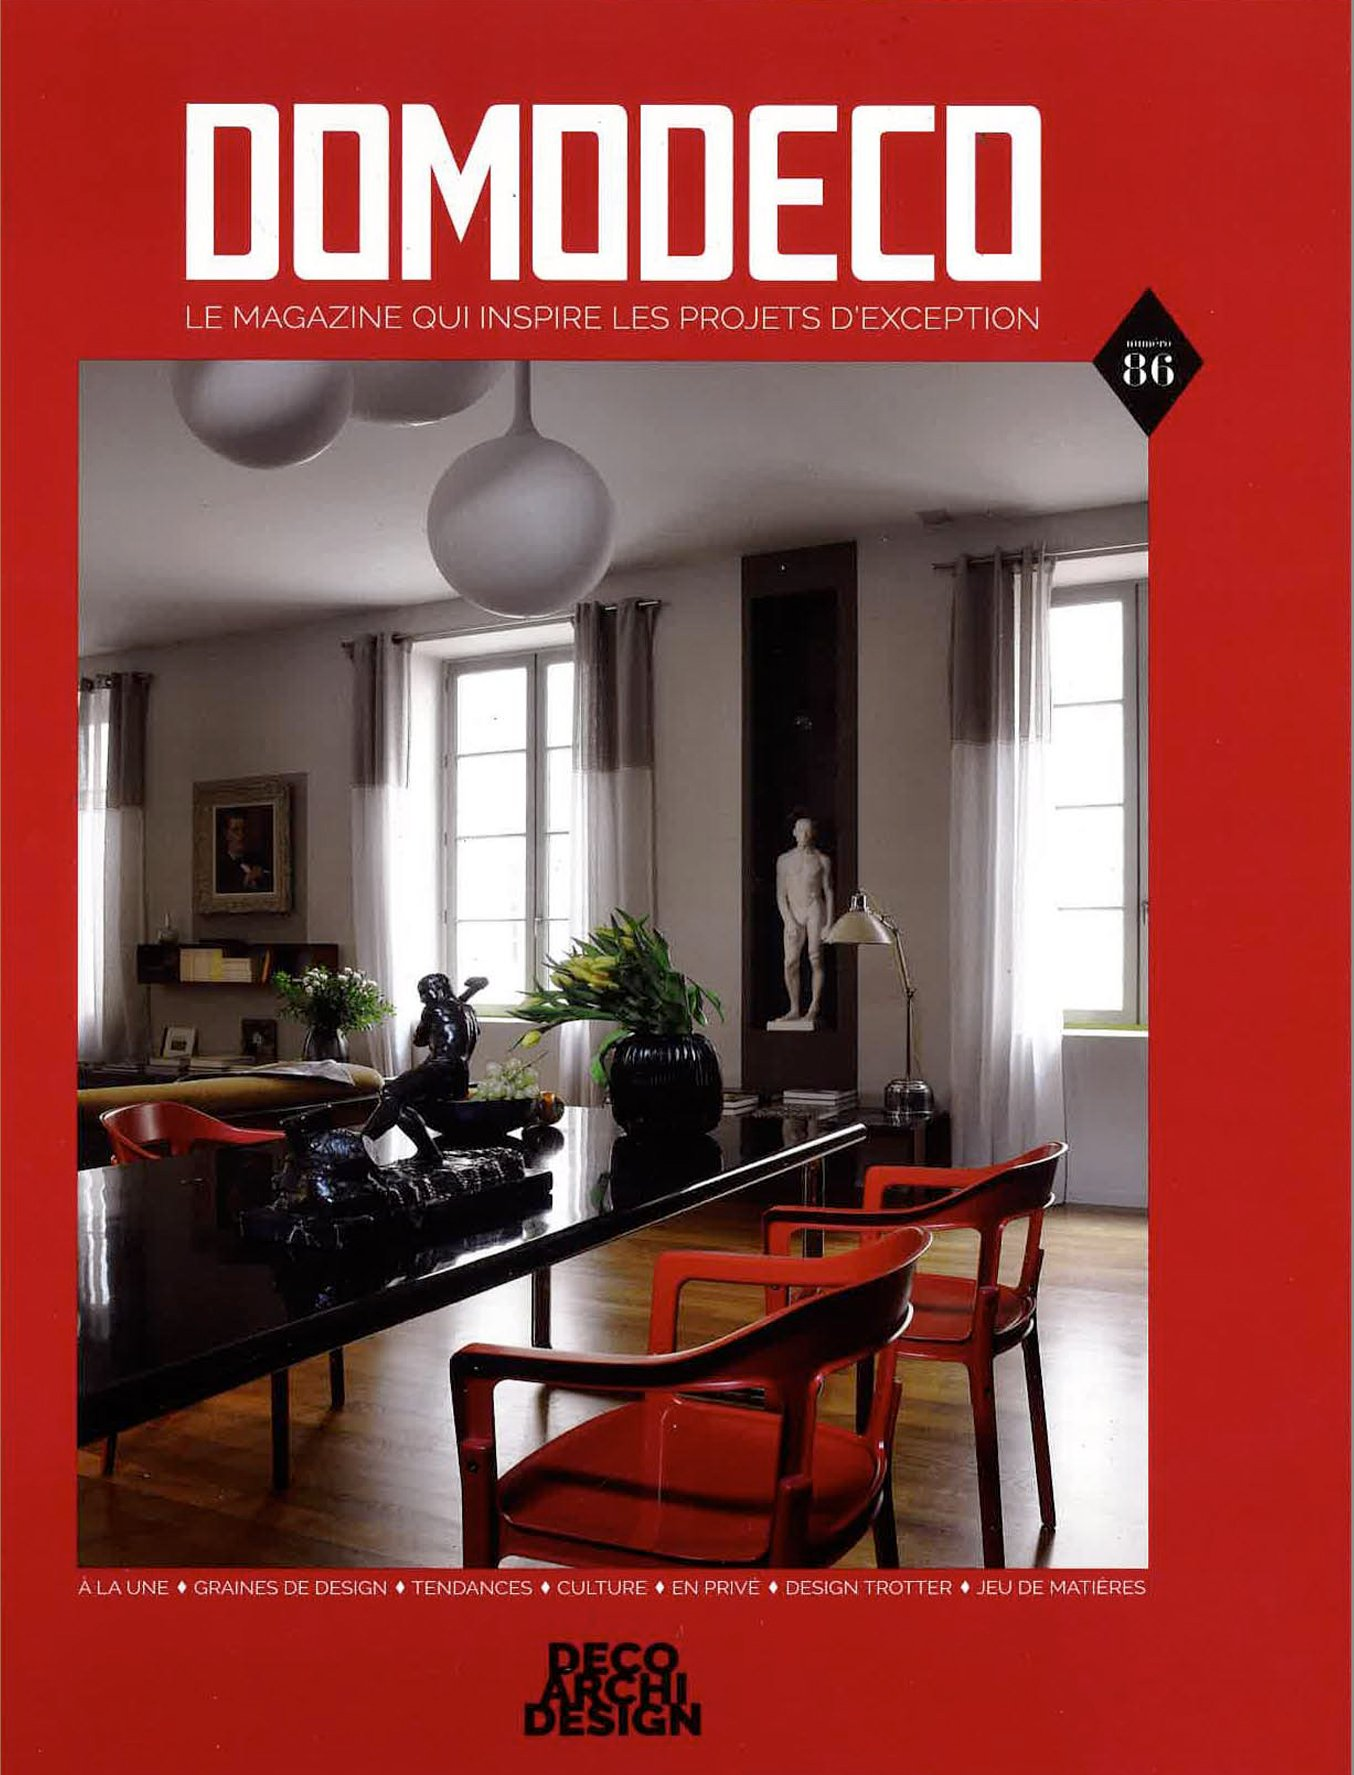 DOMODECO-APPARTEMENT-GALERIE